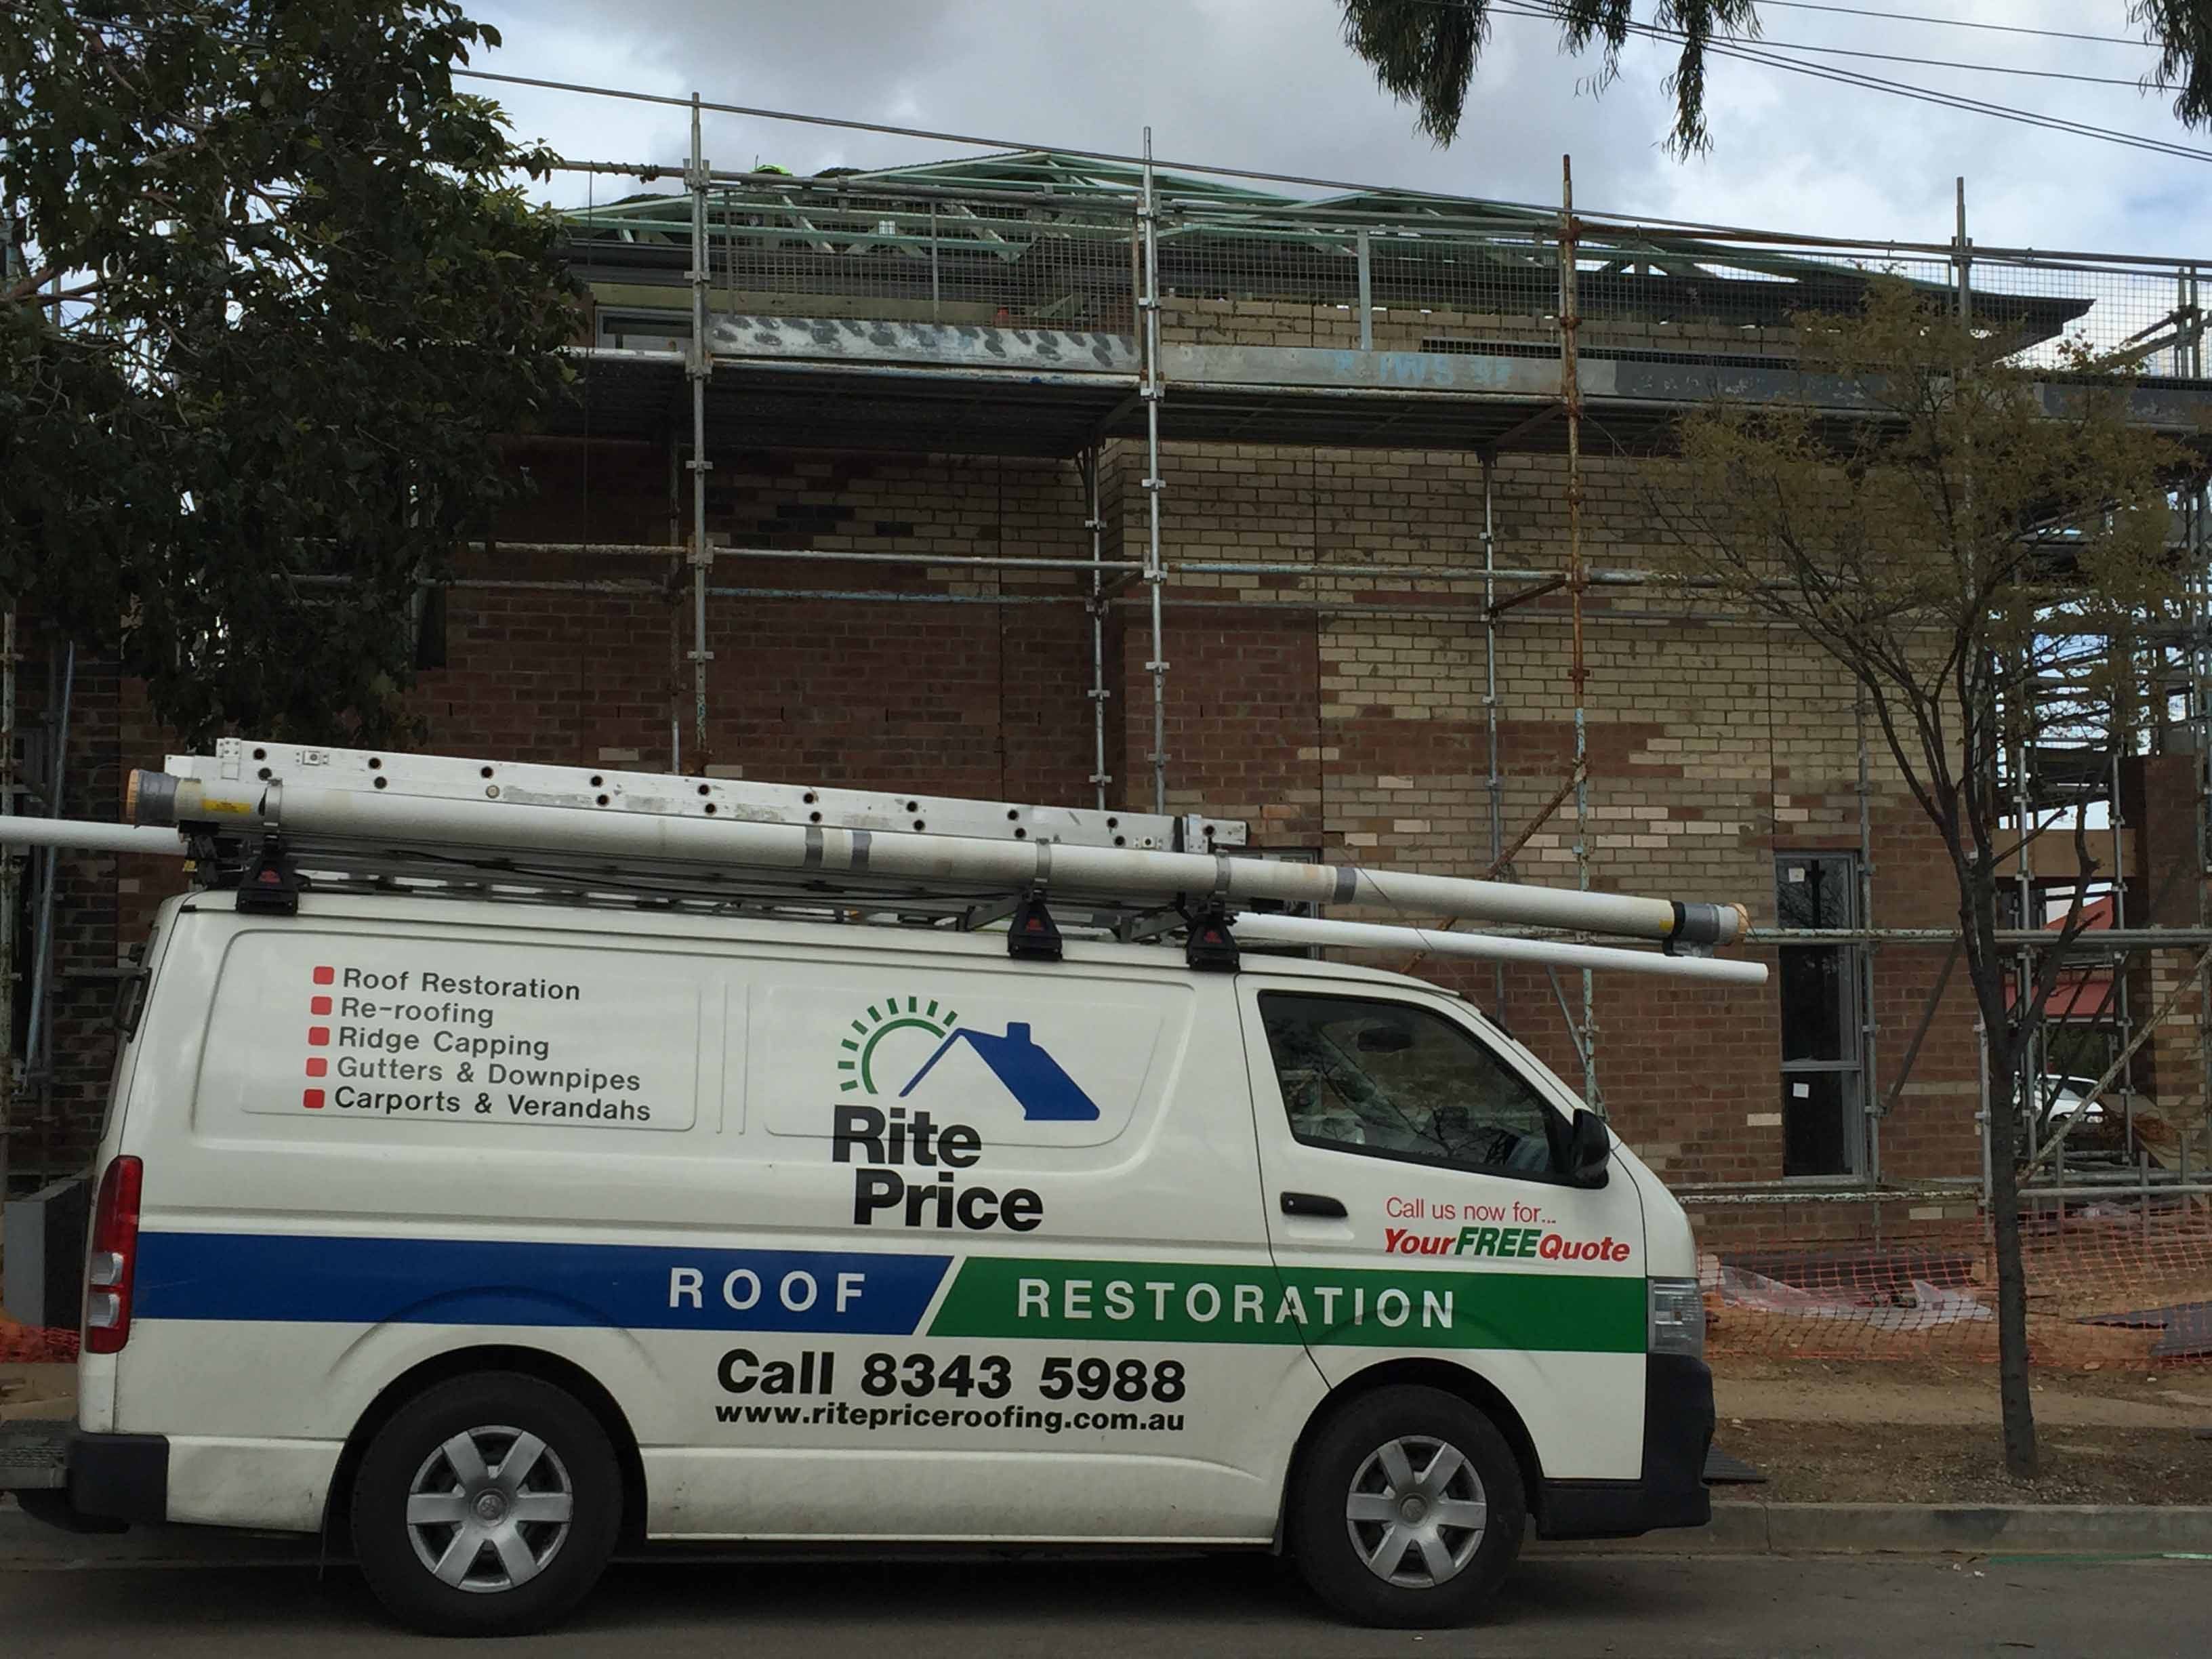 Roofing & Roof Restoration by Rite Price Roofing